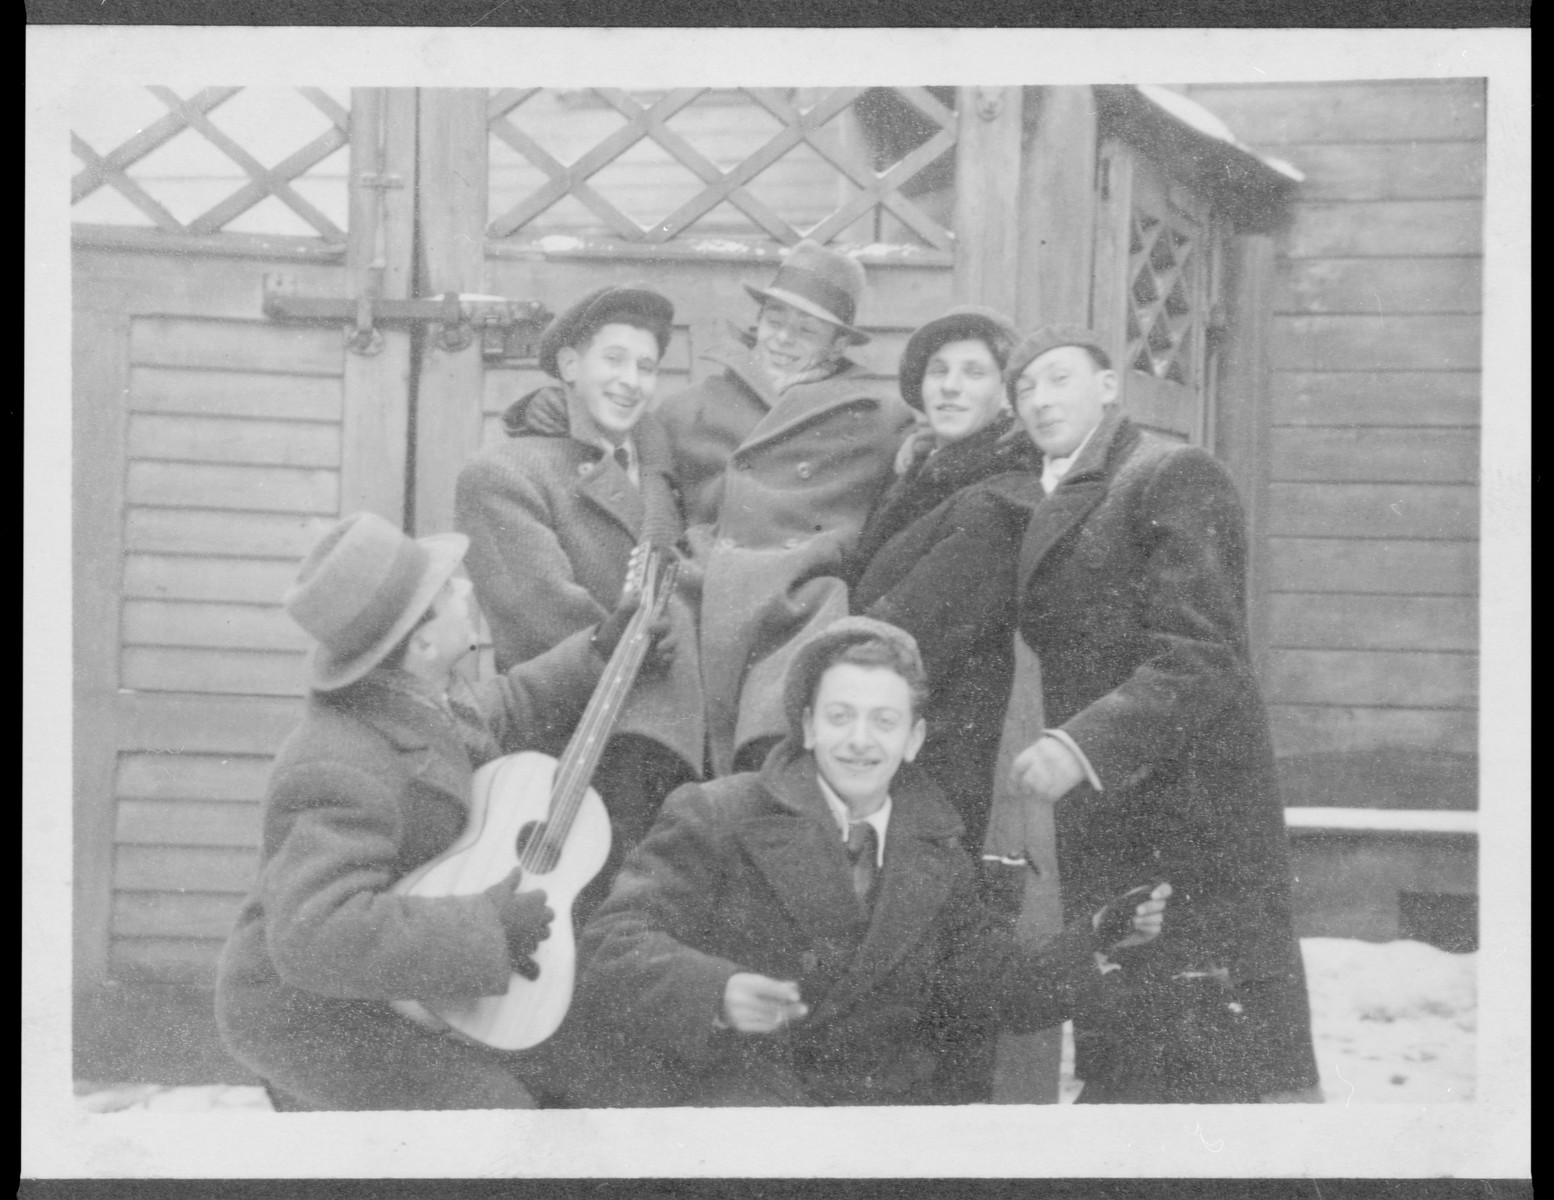 A group of Latvian Jewish friends, one playing the guitar, poses outside a building in the snow.  Pictured in the back center is Elja Heifecs.